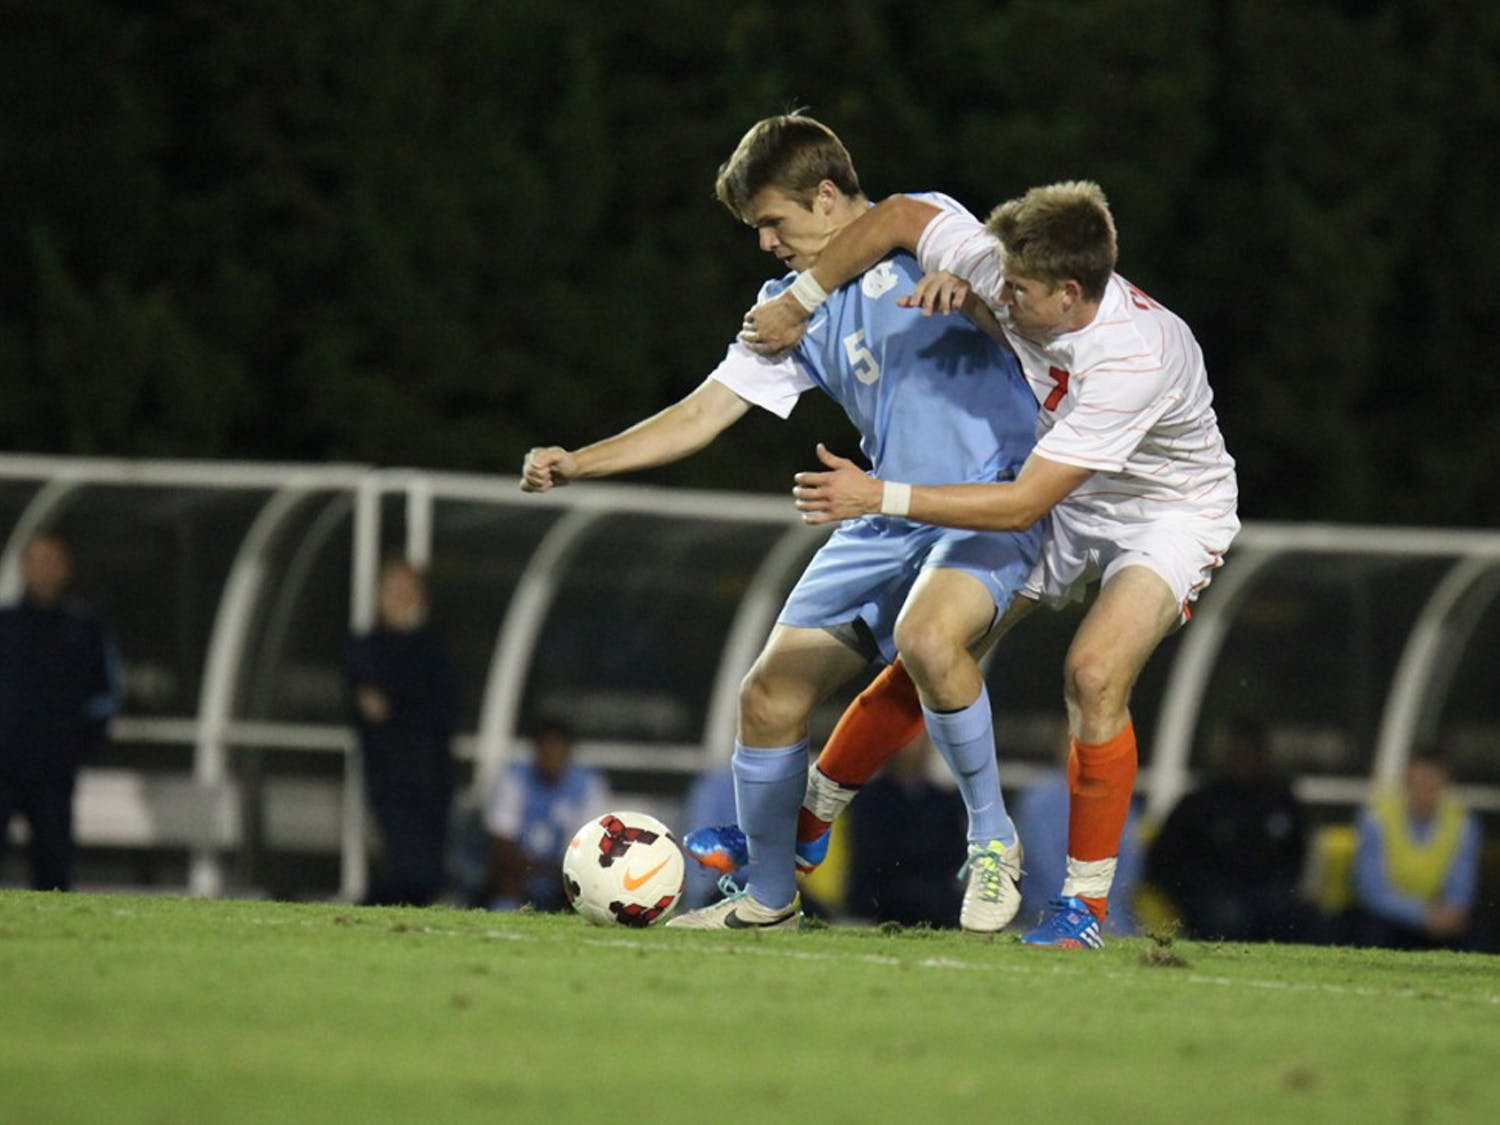 UNC Men's soccer lost to Clemson.